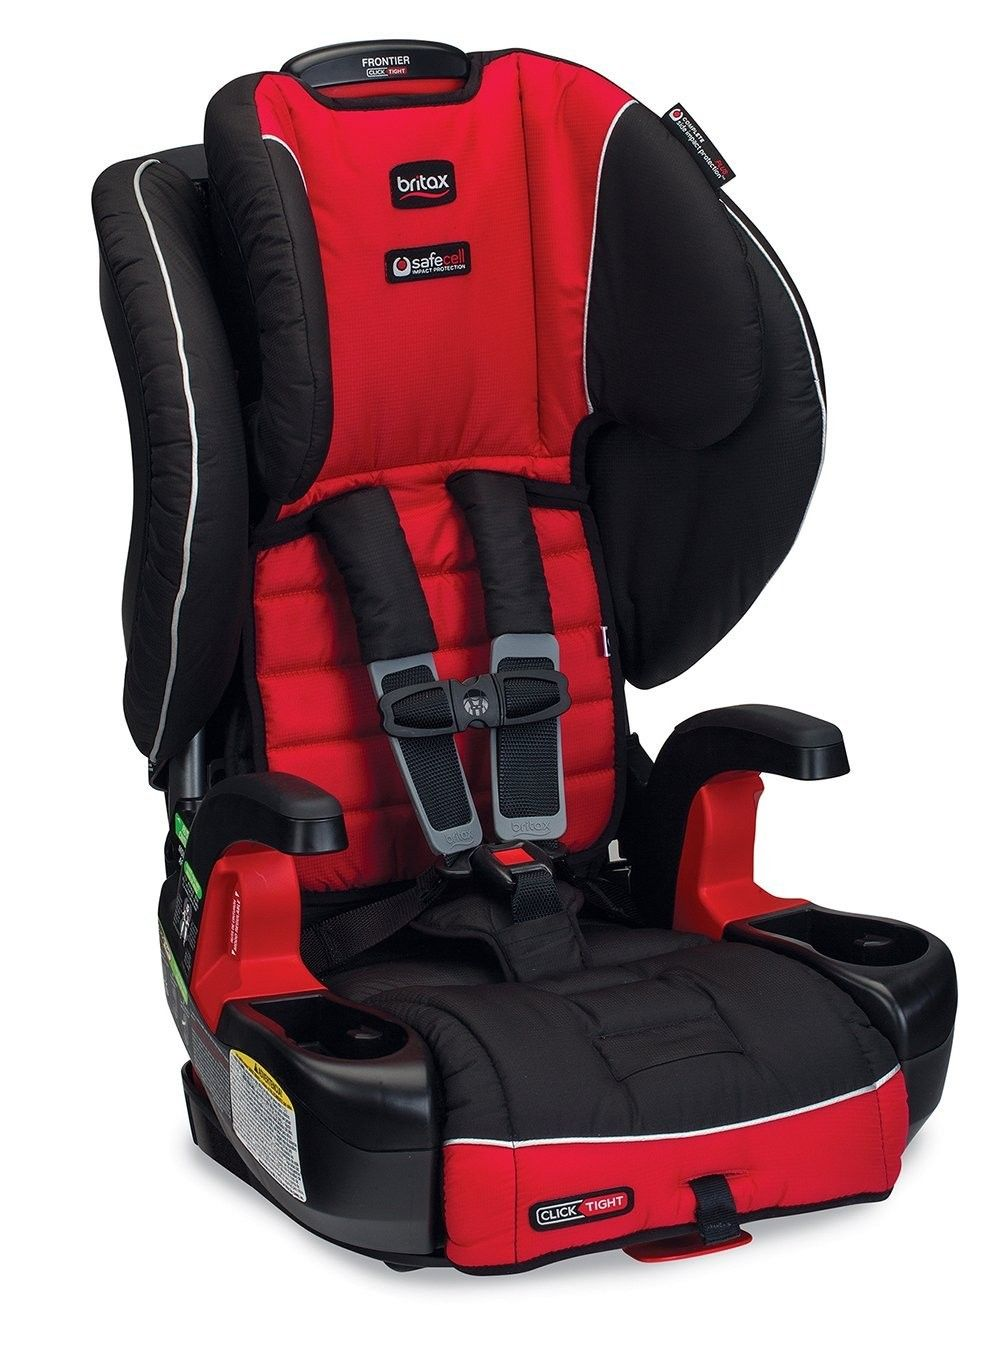 Britax Frontier Clicktight G1 1 With Images Best Toddler Car